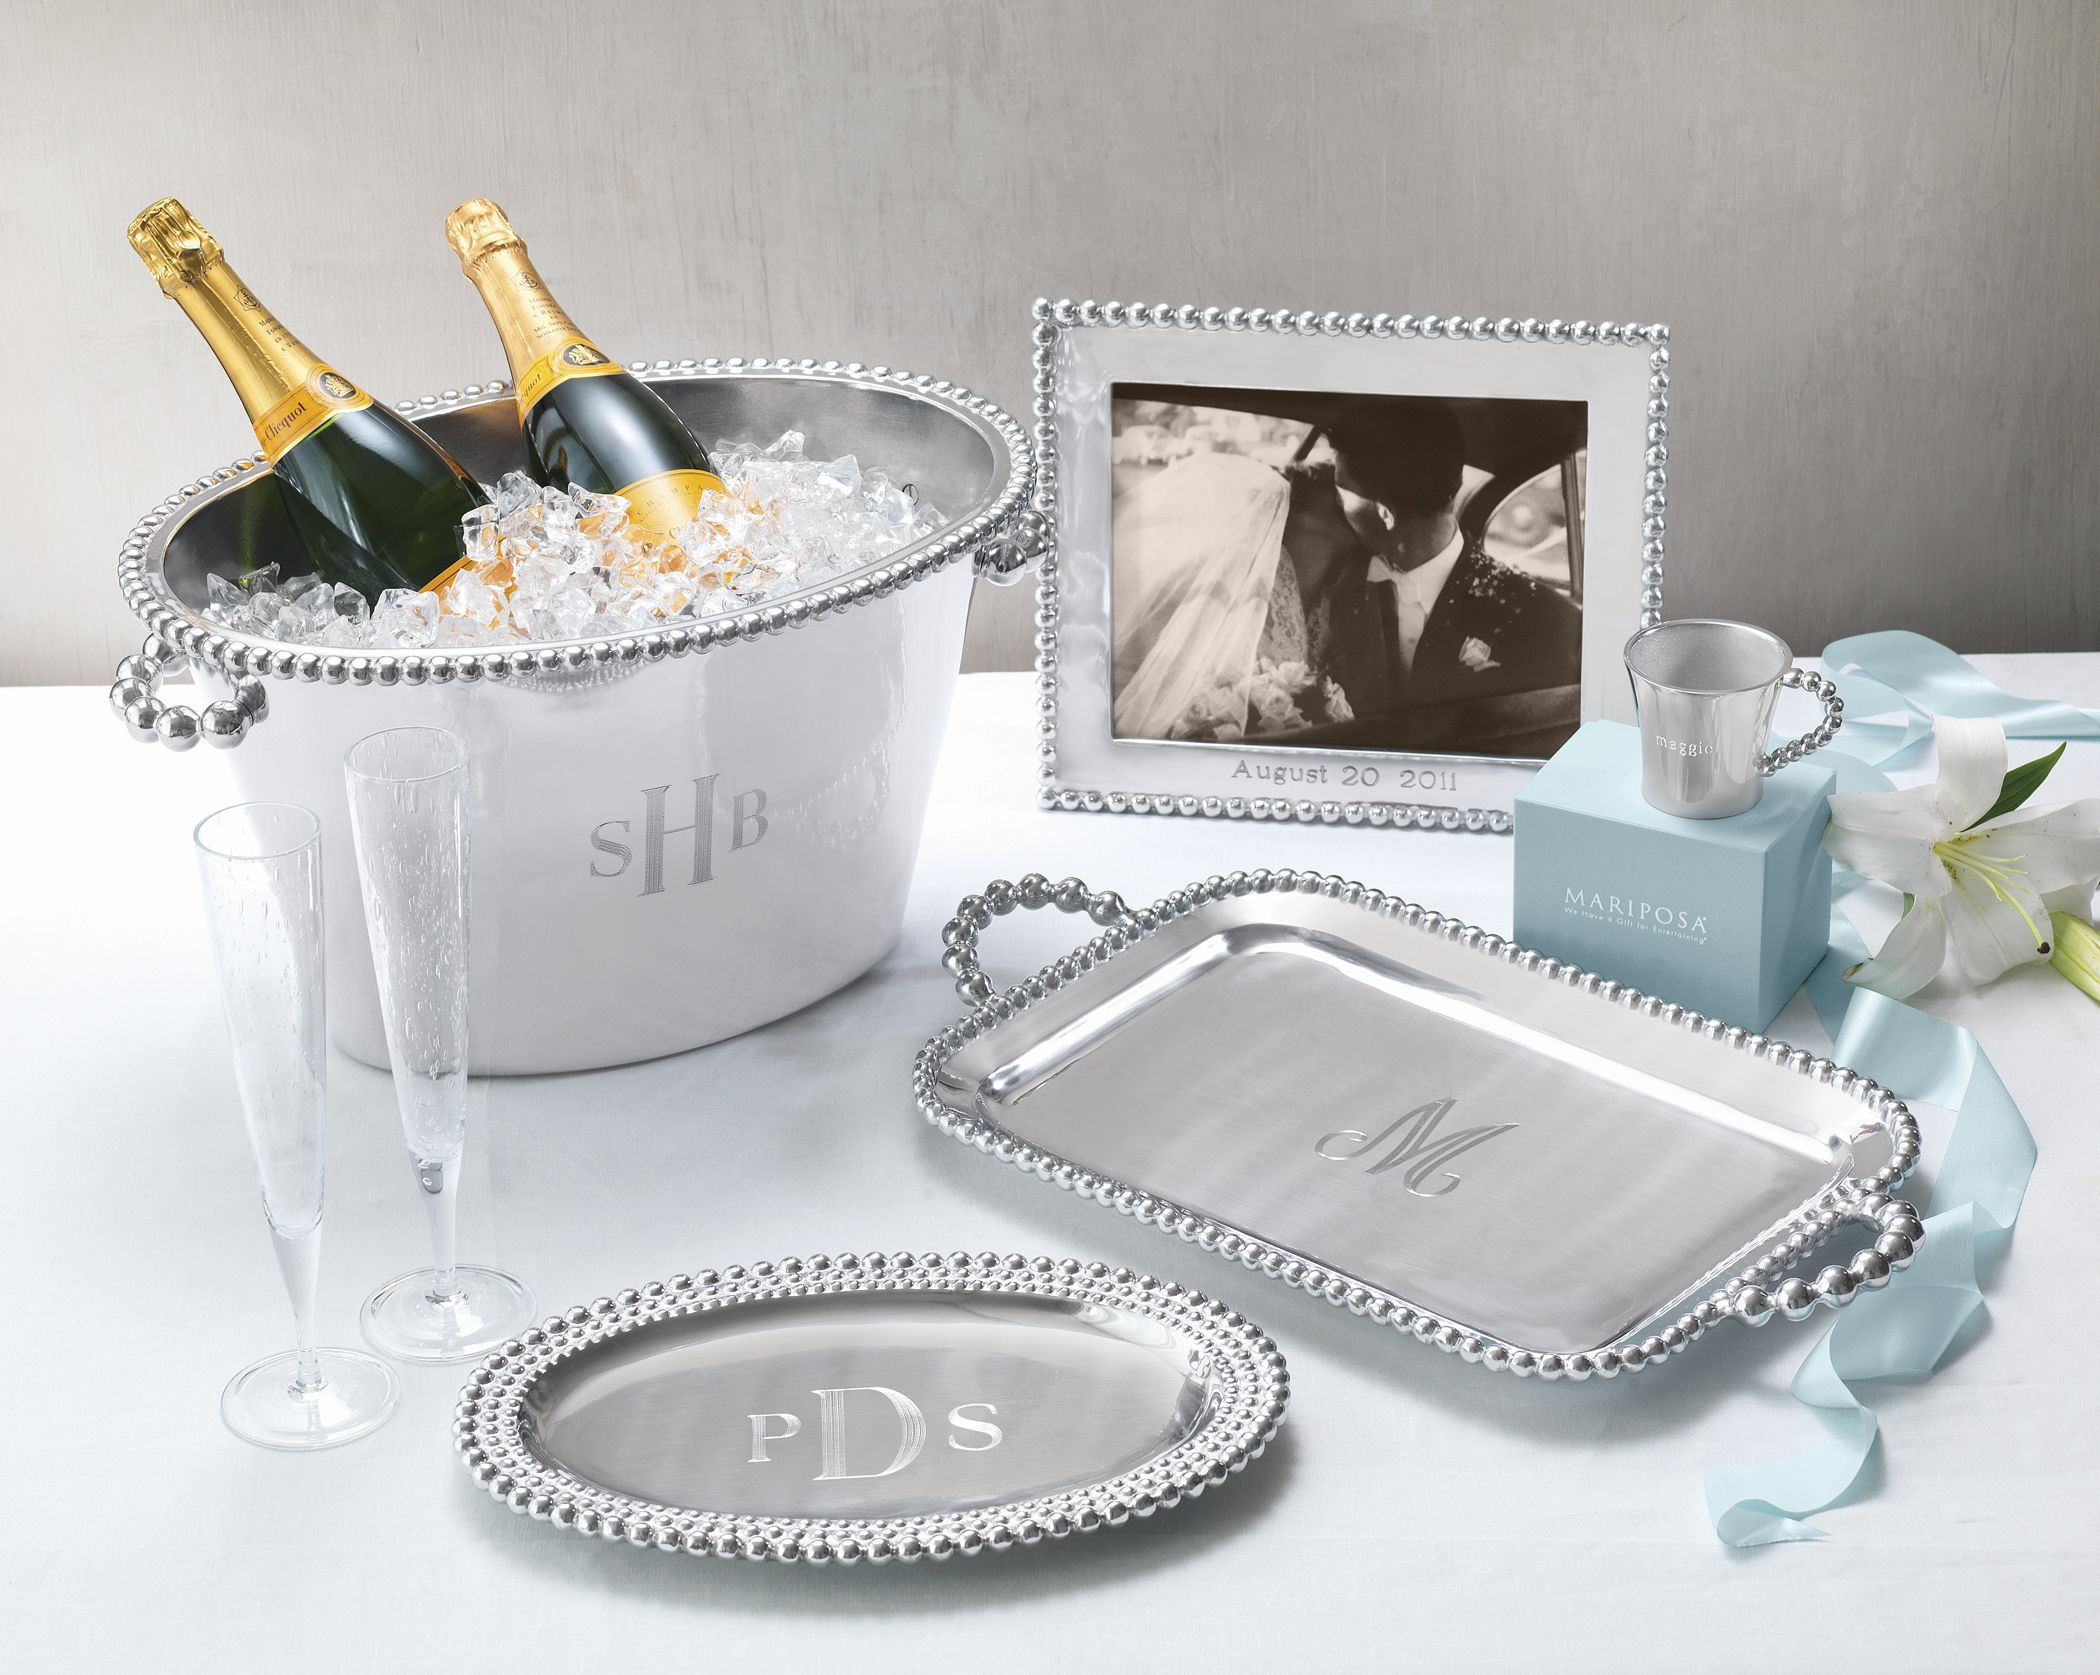 Online Wedding Gift: Perfect Weddings Gifts From Mariposa: Monogrammed Serving